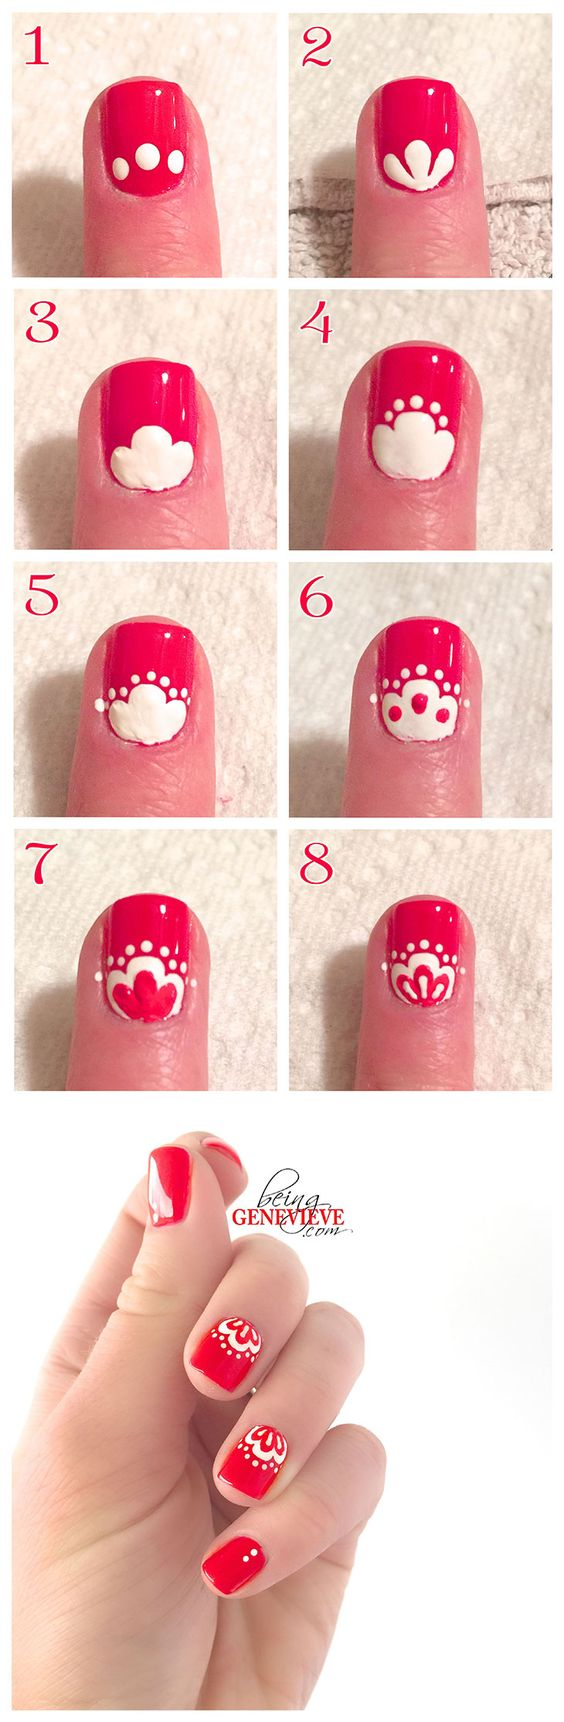 nail34 - 111 Nail Art Tutorials - Learn How To Do The Simple Ones To Intricate Details